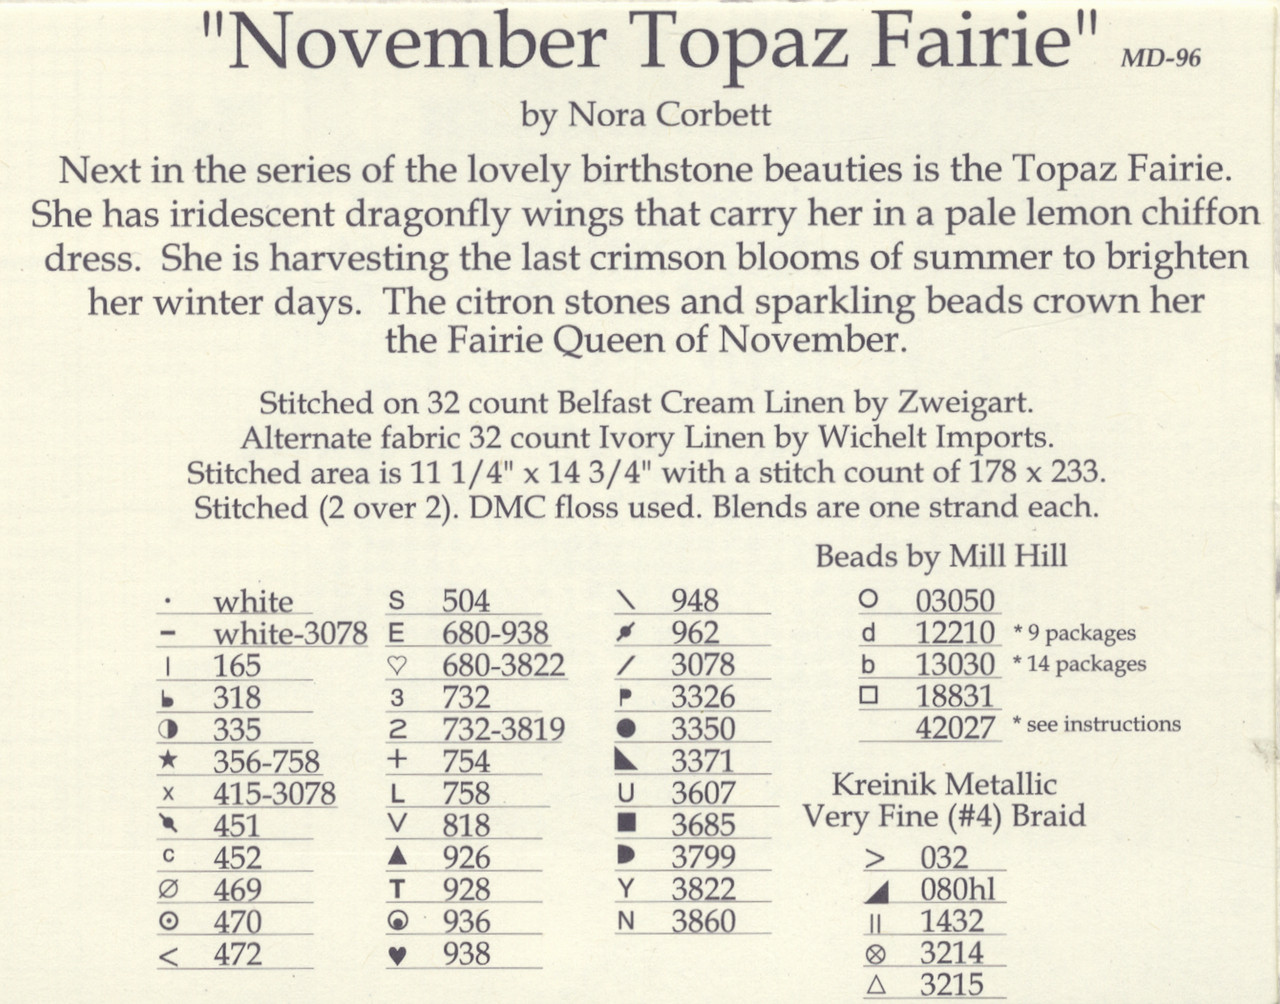 Mirabilia - November Topaz Fairie